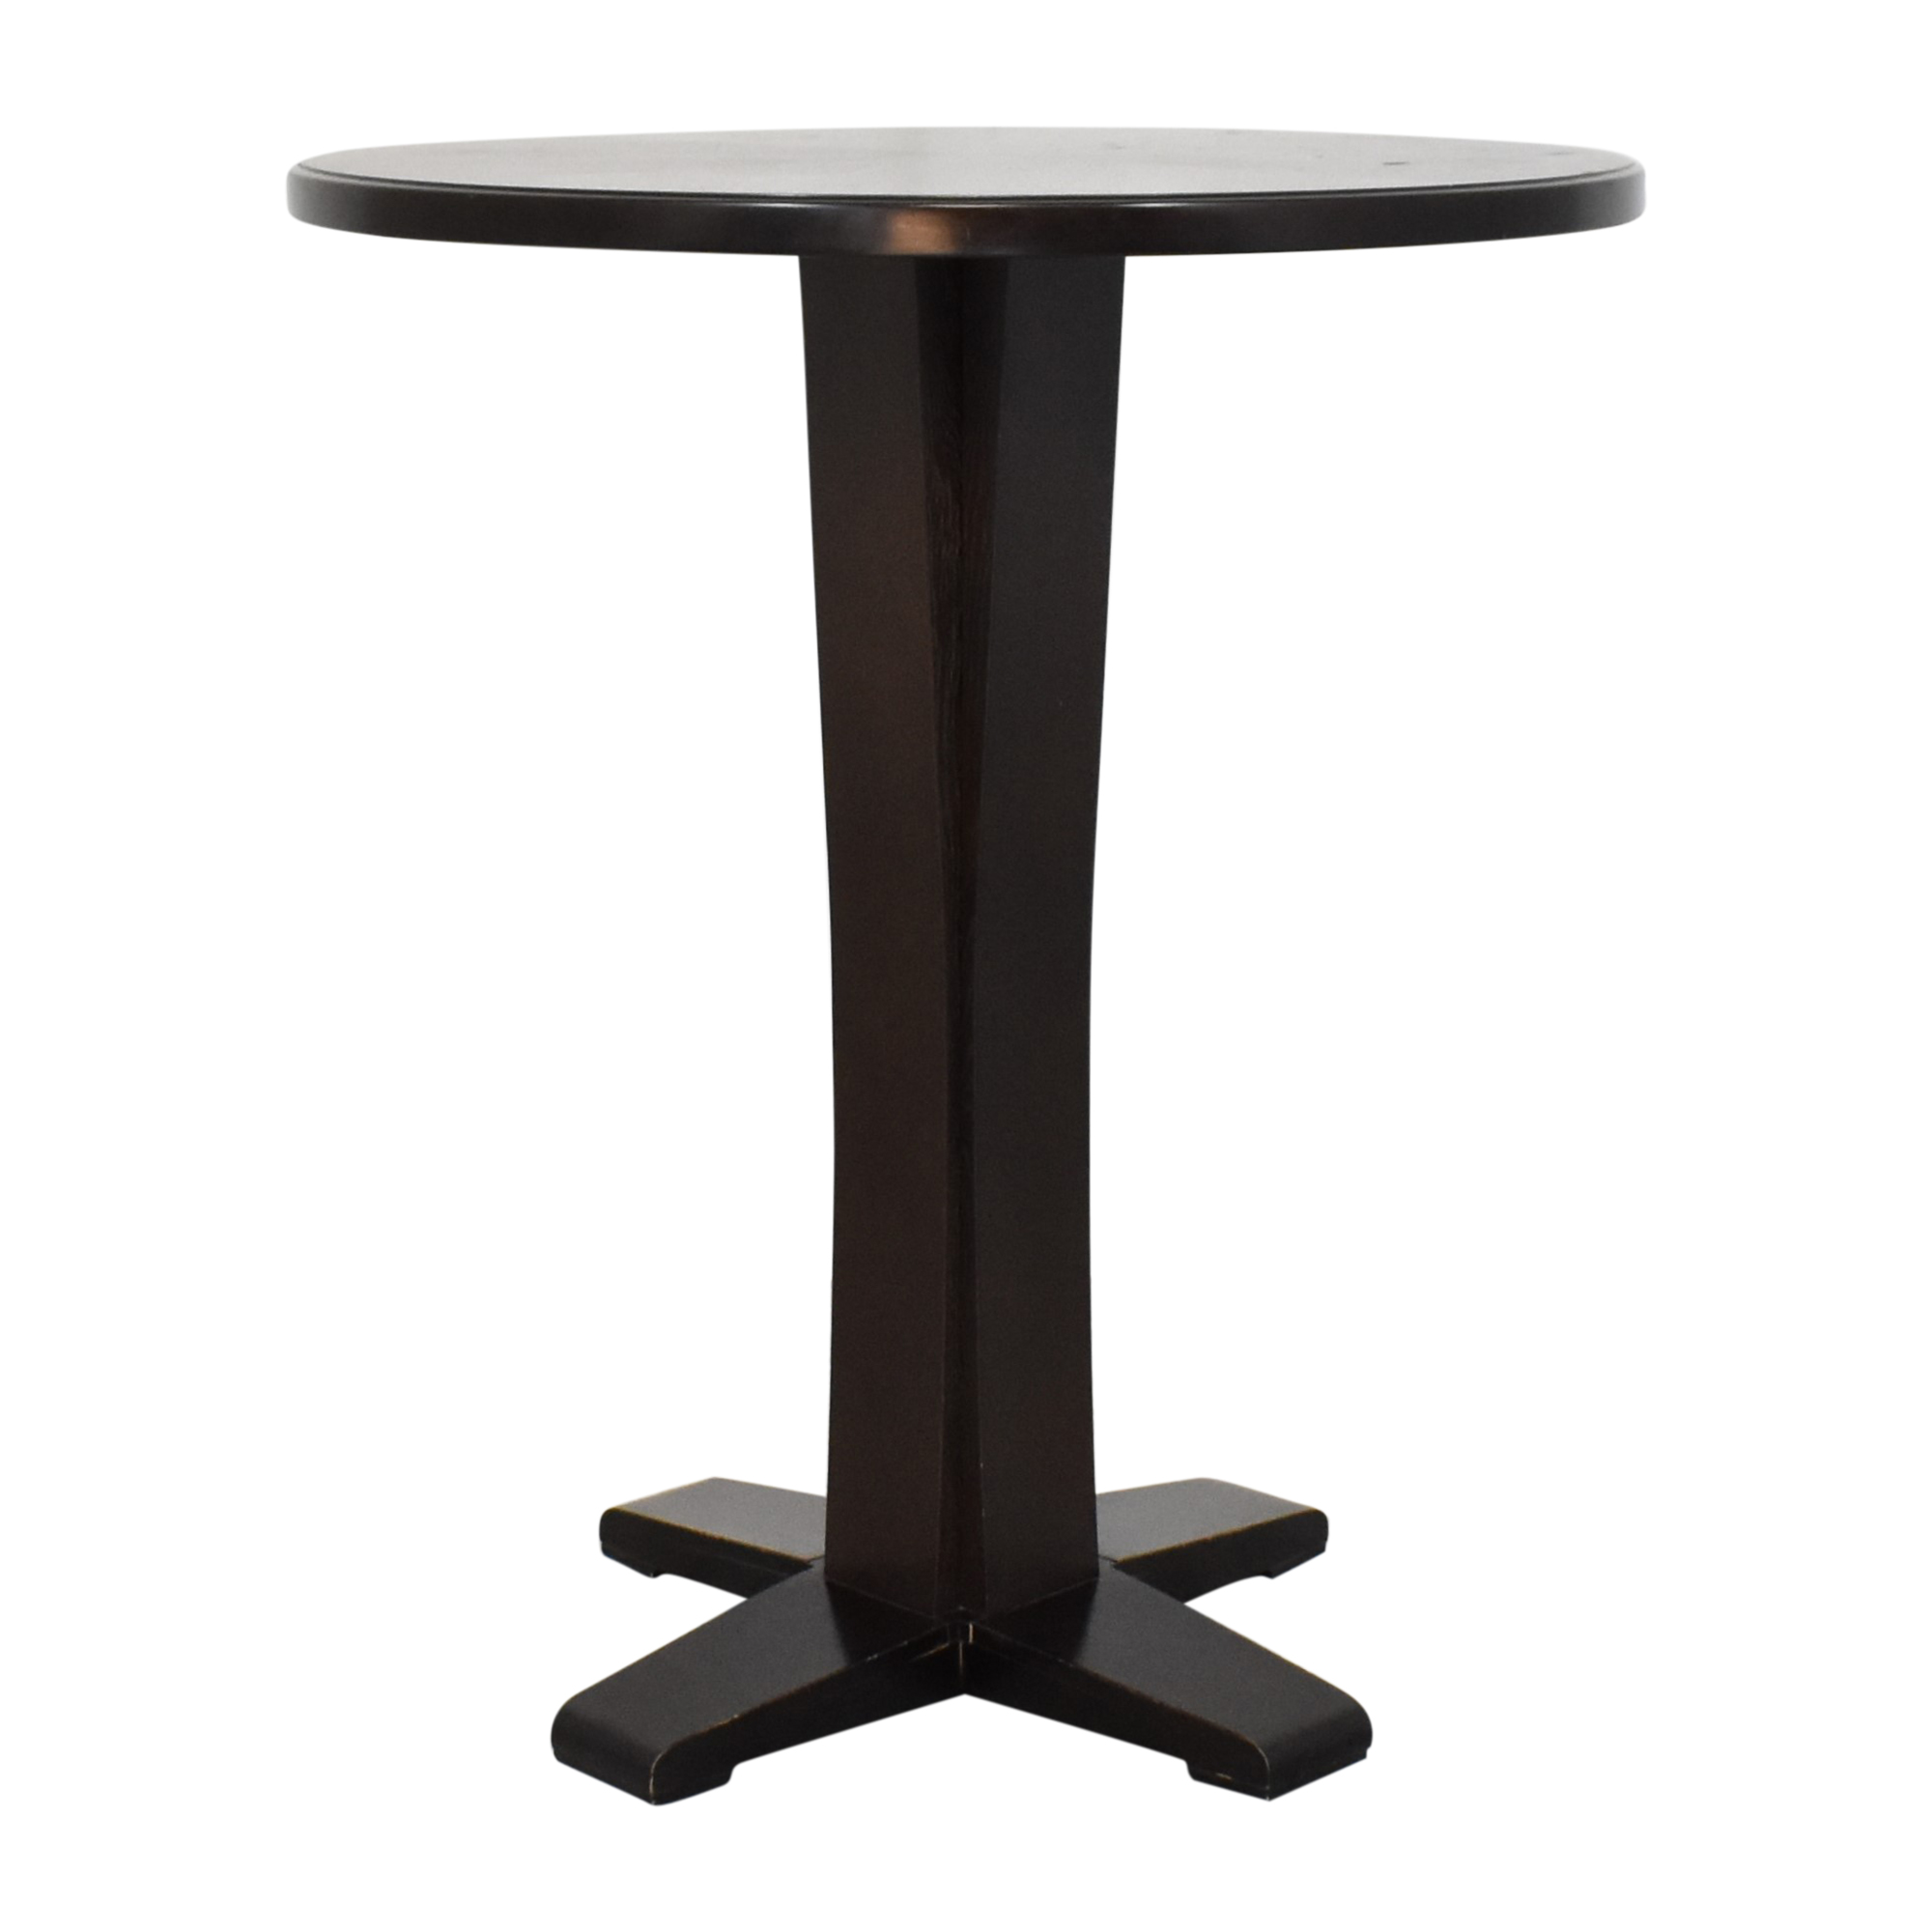 buy Crate & Barrel Crate & Barrel High Top Table online